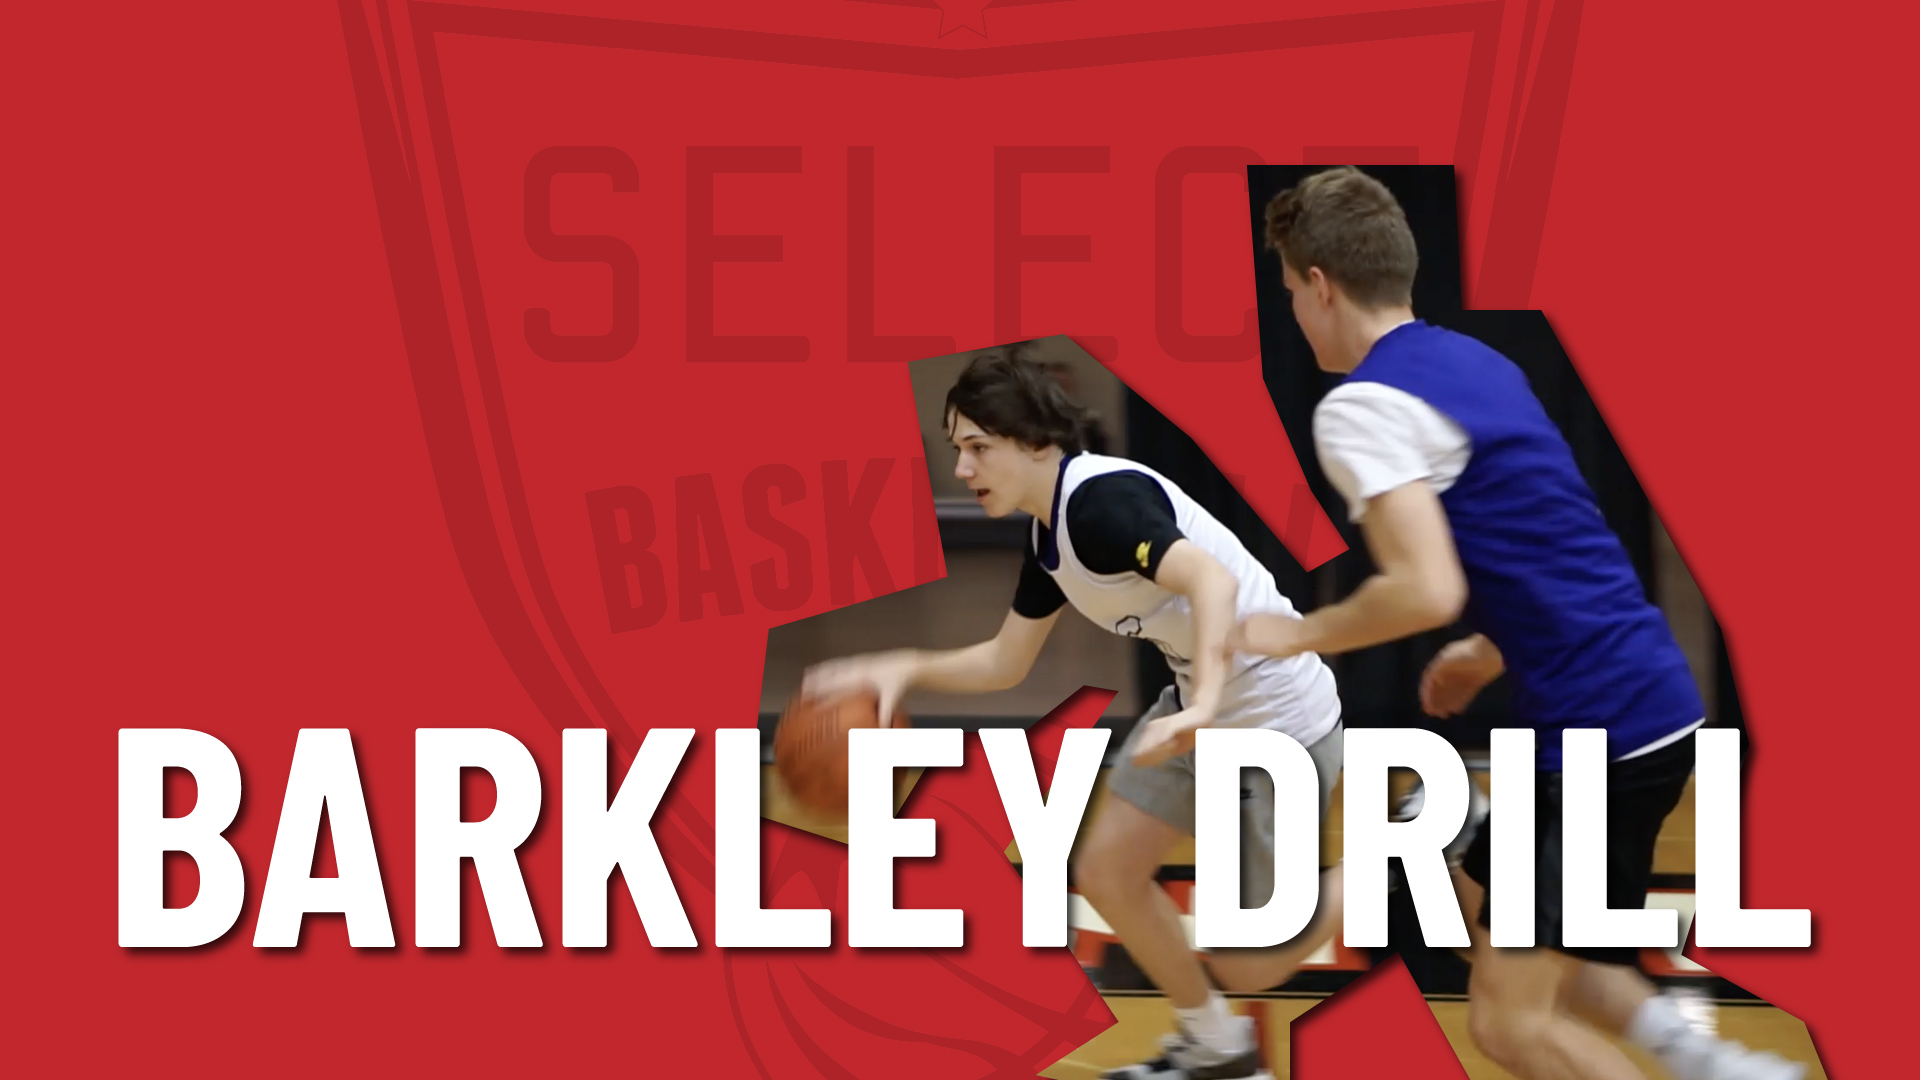 Named after NBA Hall of Famer Charles Barkley, this drill helps players get good position and use their body in the post, giving them more options.